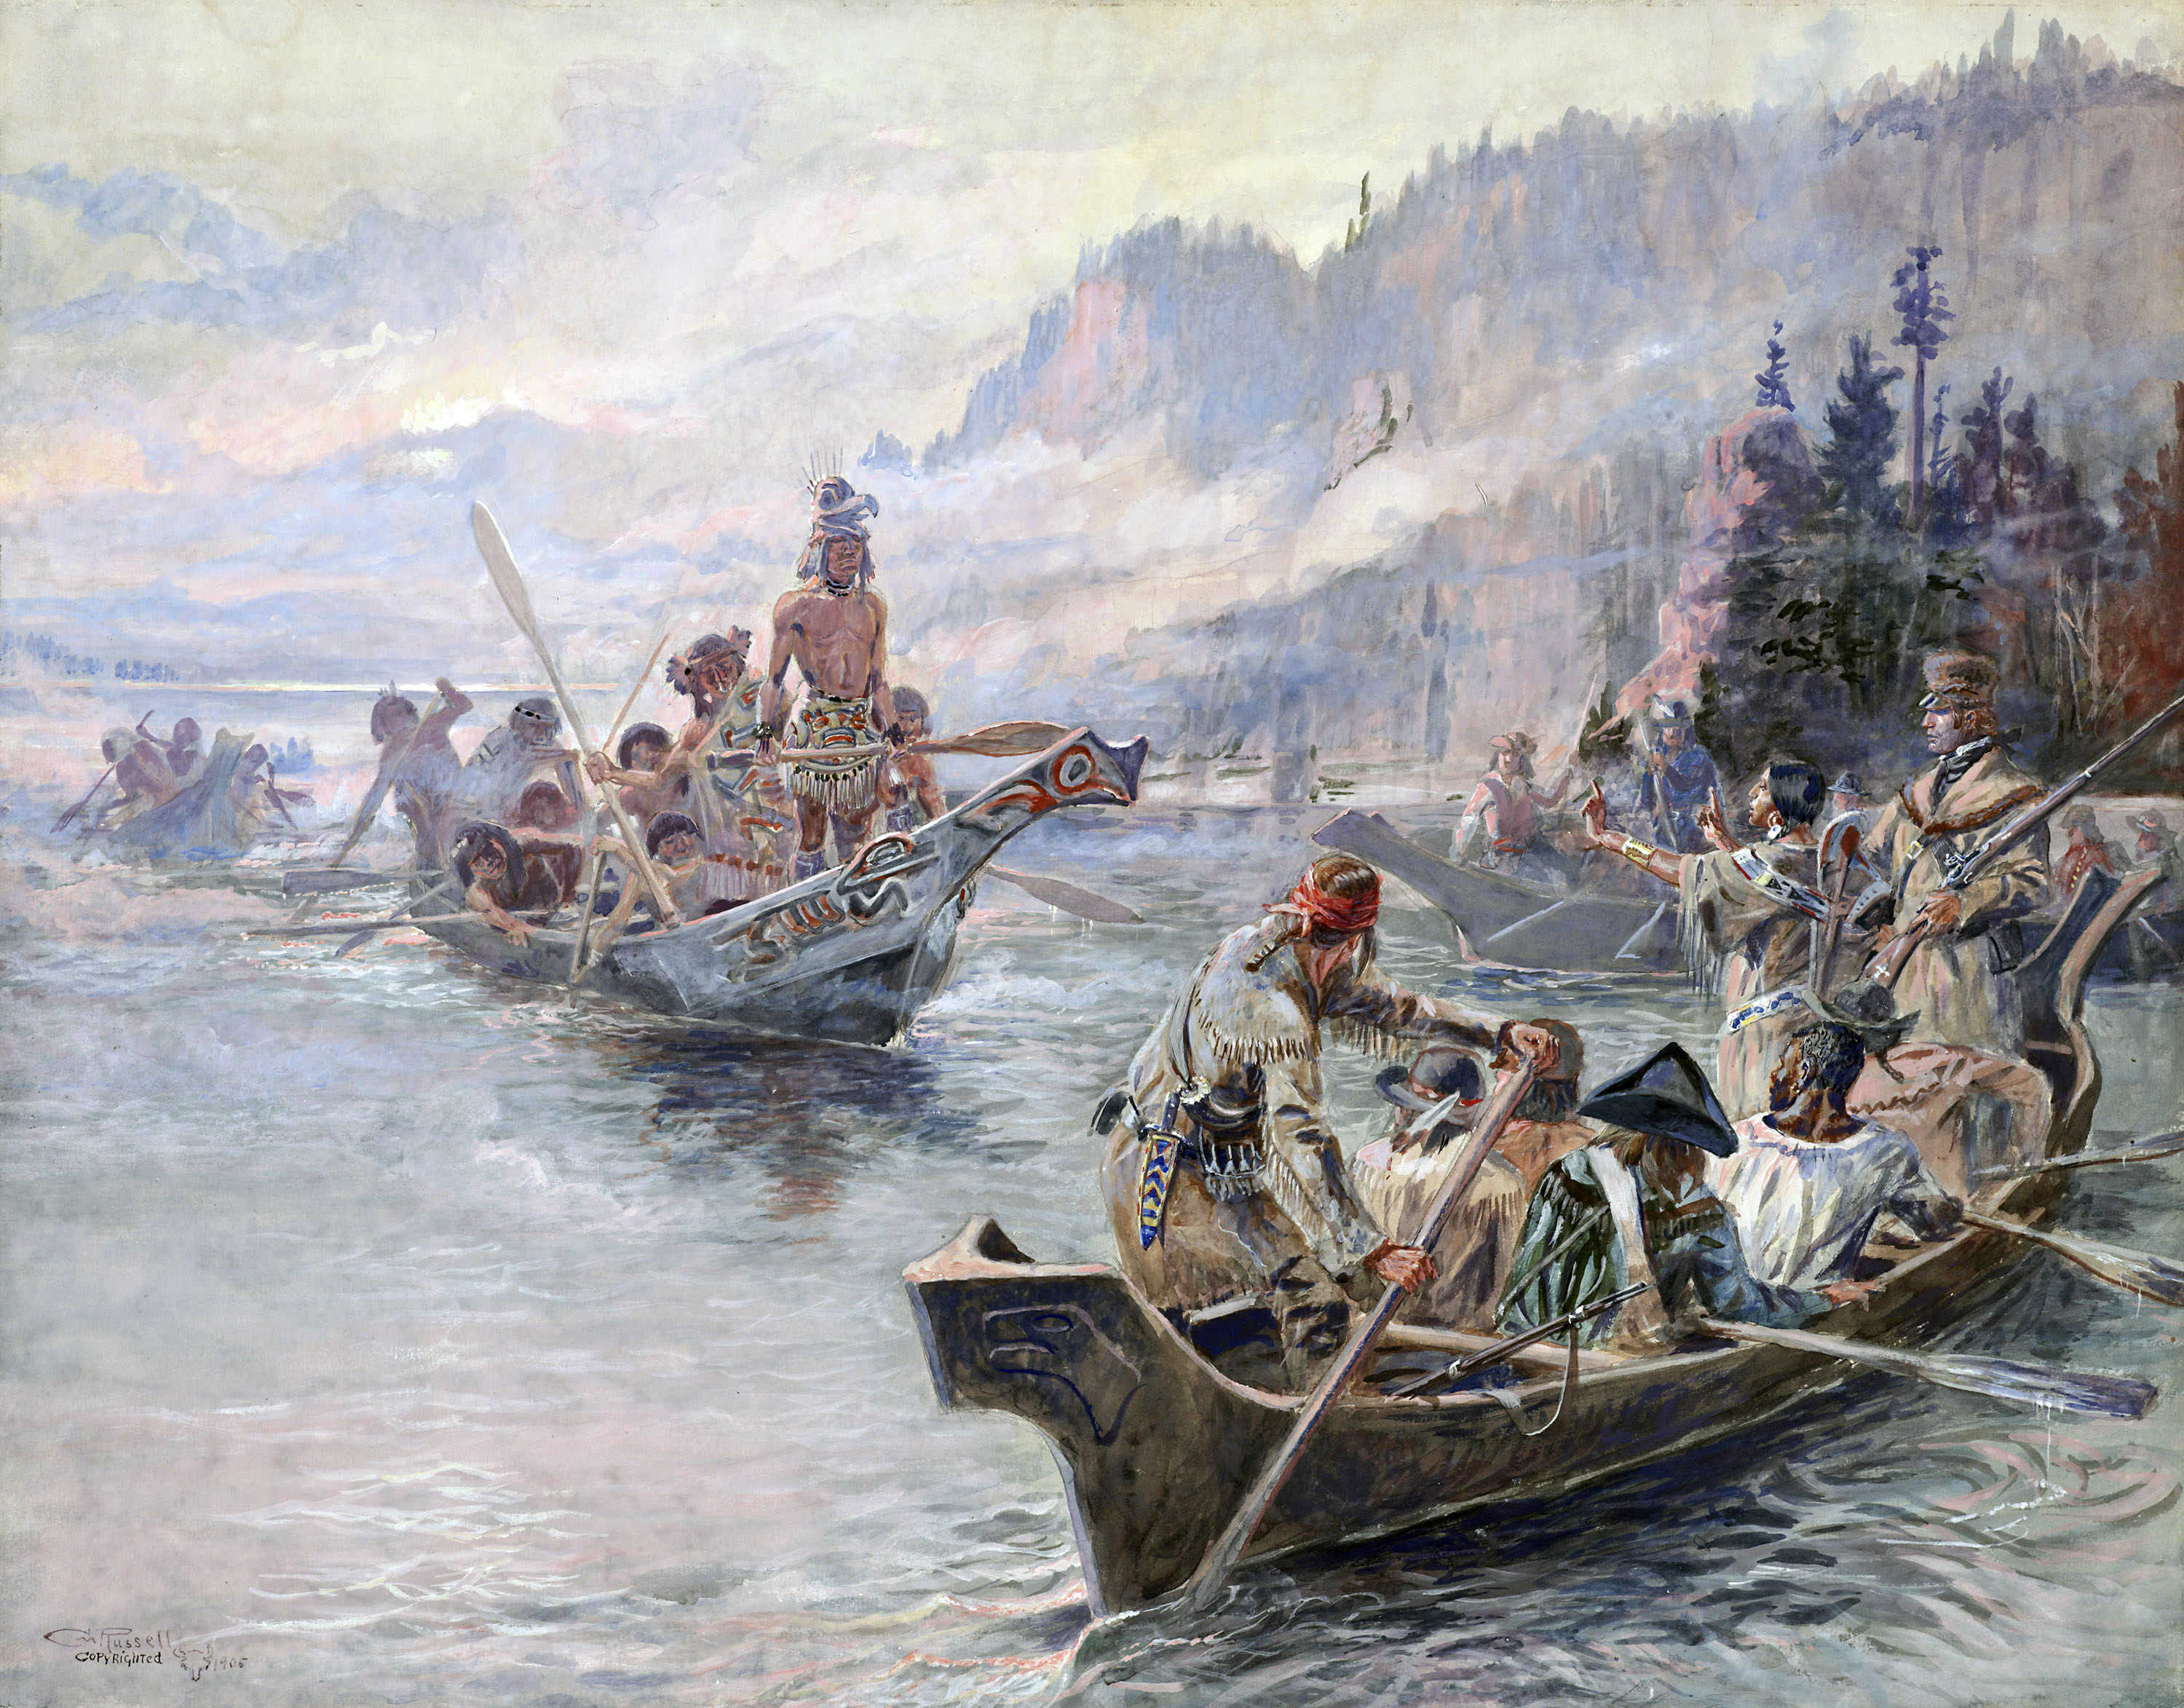 Painting Lewis and Clark on the Lower Columbia (Height: 24 ? (60.9 cm); Width: 28 ? (71.1 cm) ) by Charles Marion Russell; Opaque and transparent watercolor over graphite underdrawing on paper